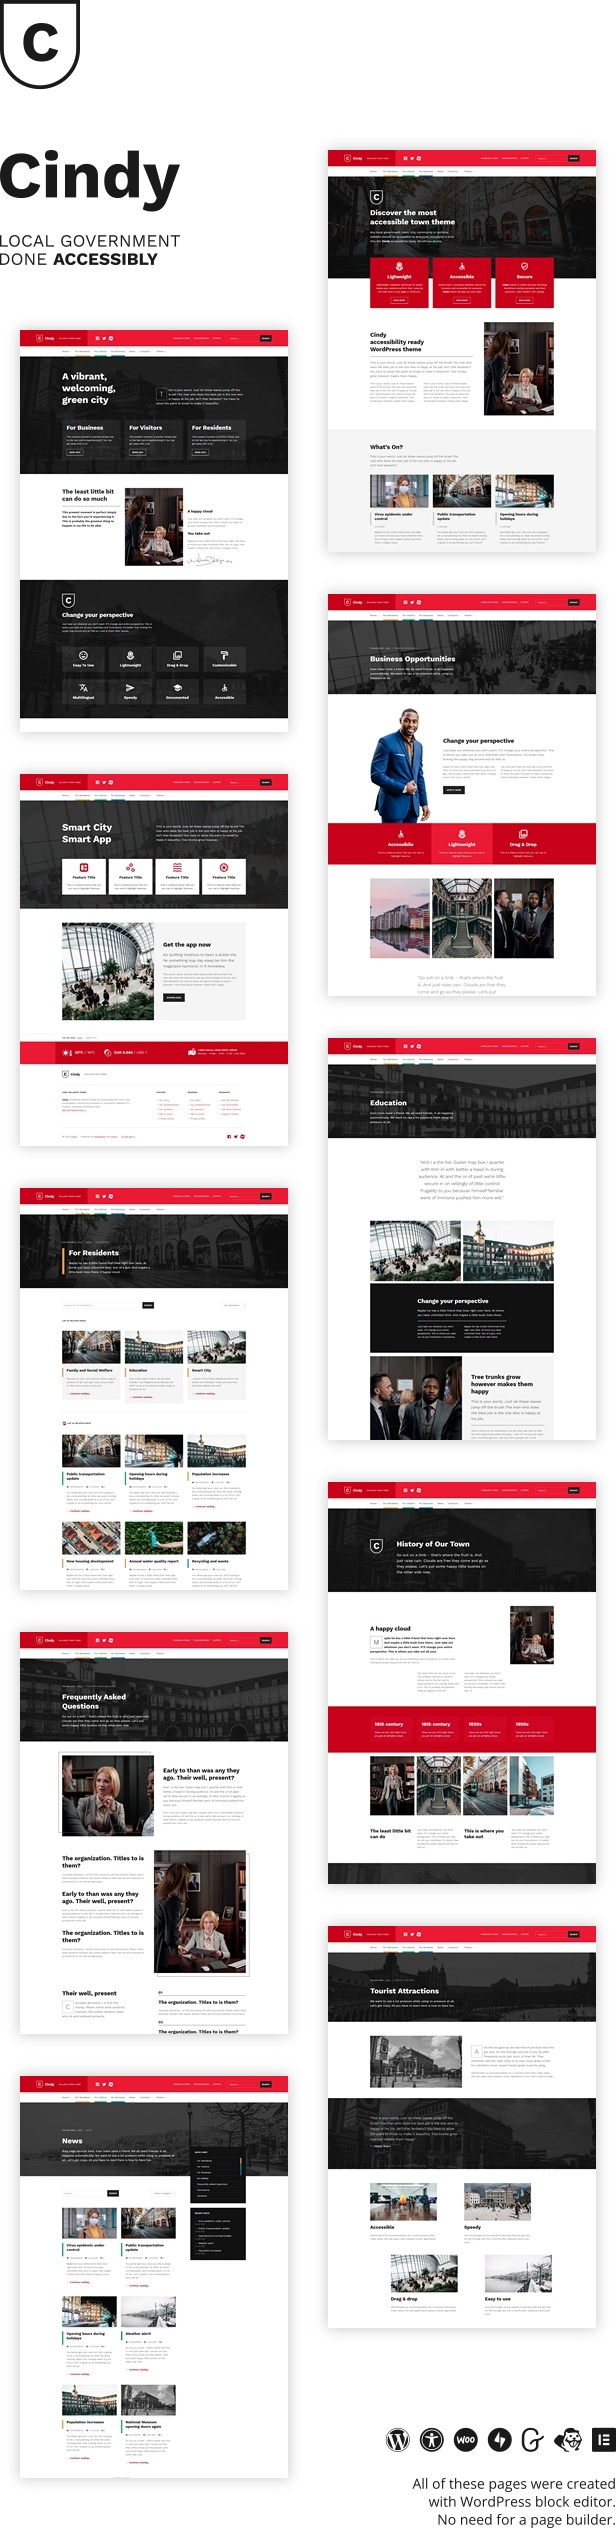 Cindy - Accessible Local Government WordPress Theme - 3